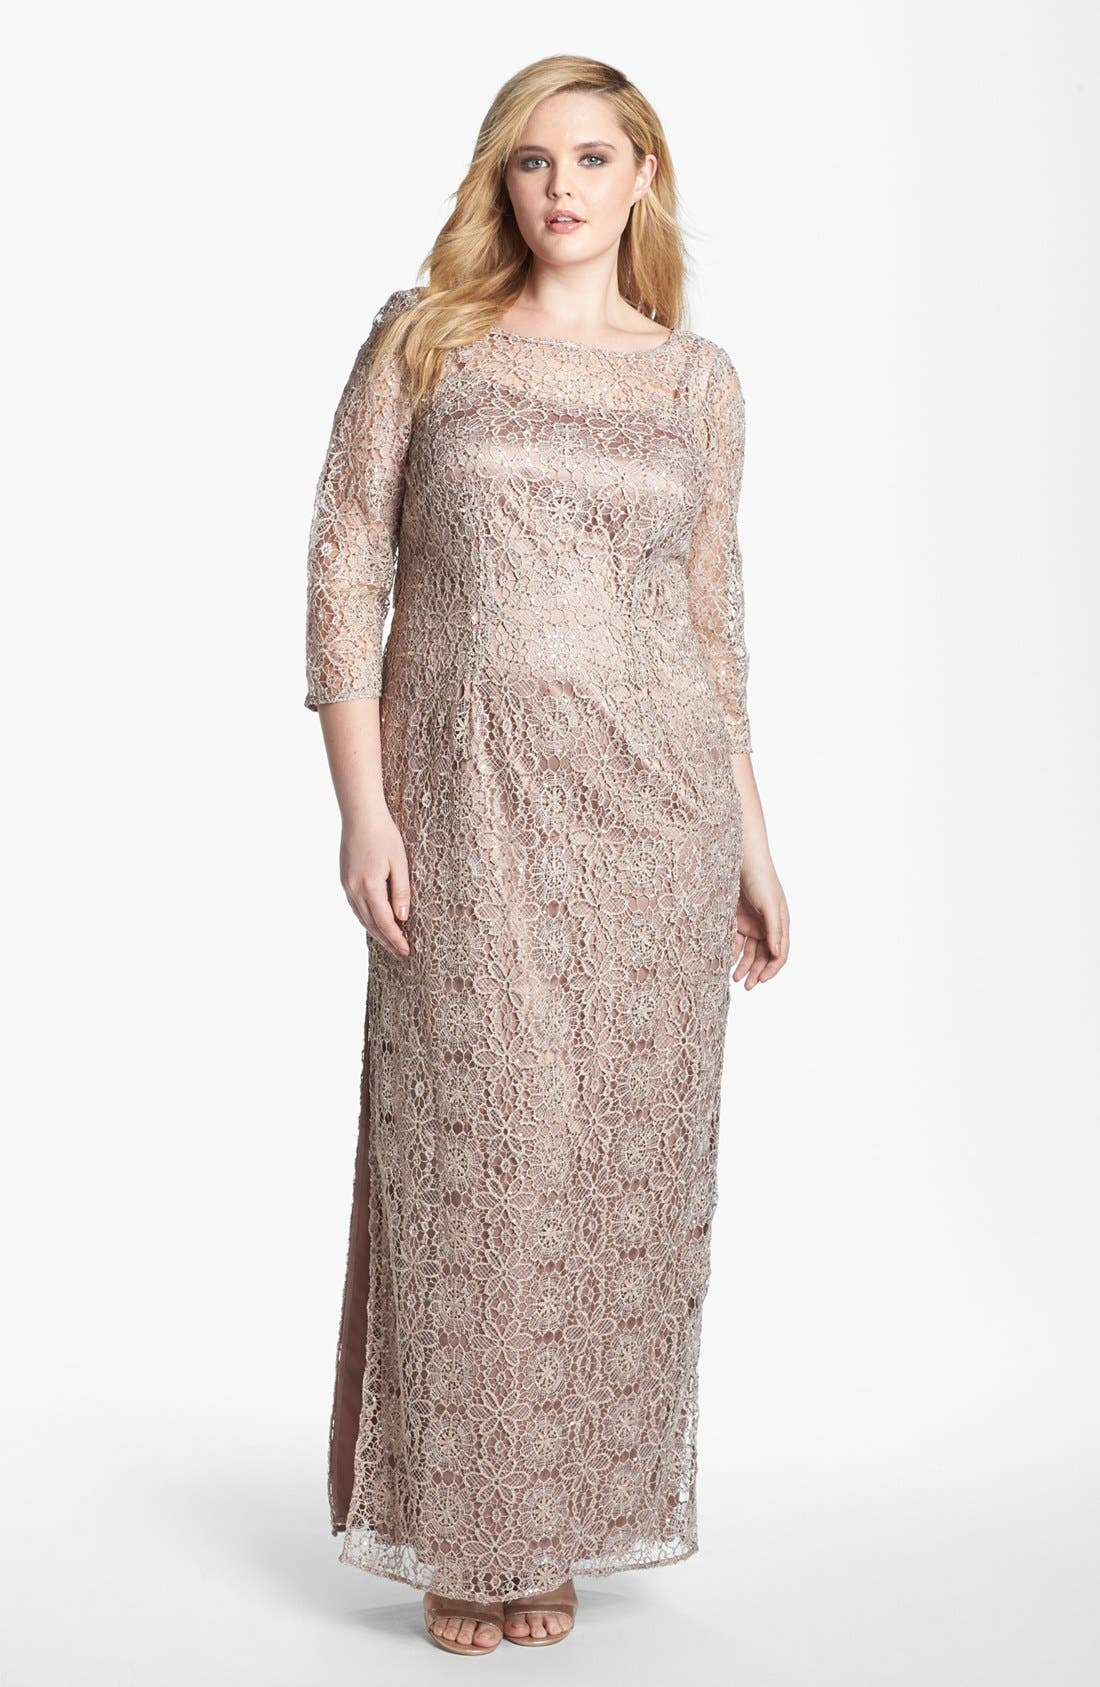 Alternate Image 1 Selected - Adrianna Papell Floral Lace Column Gown (Plus Size)